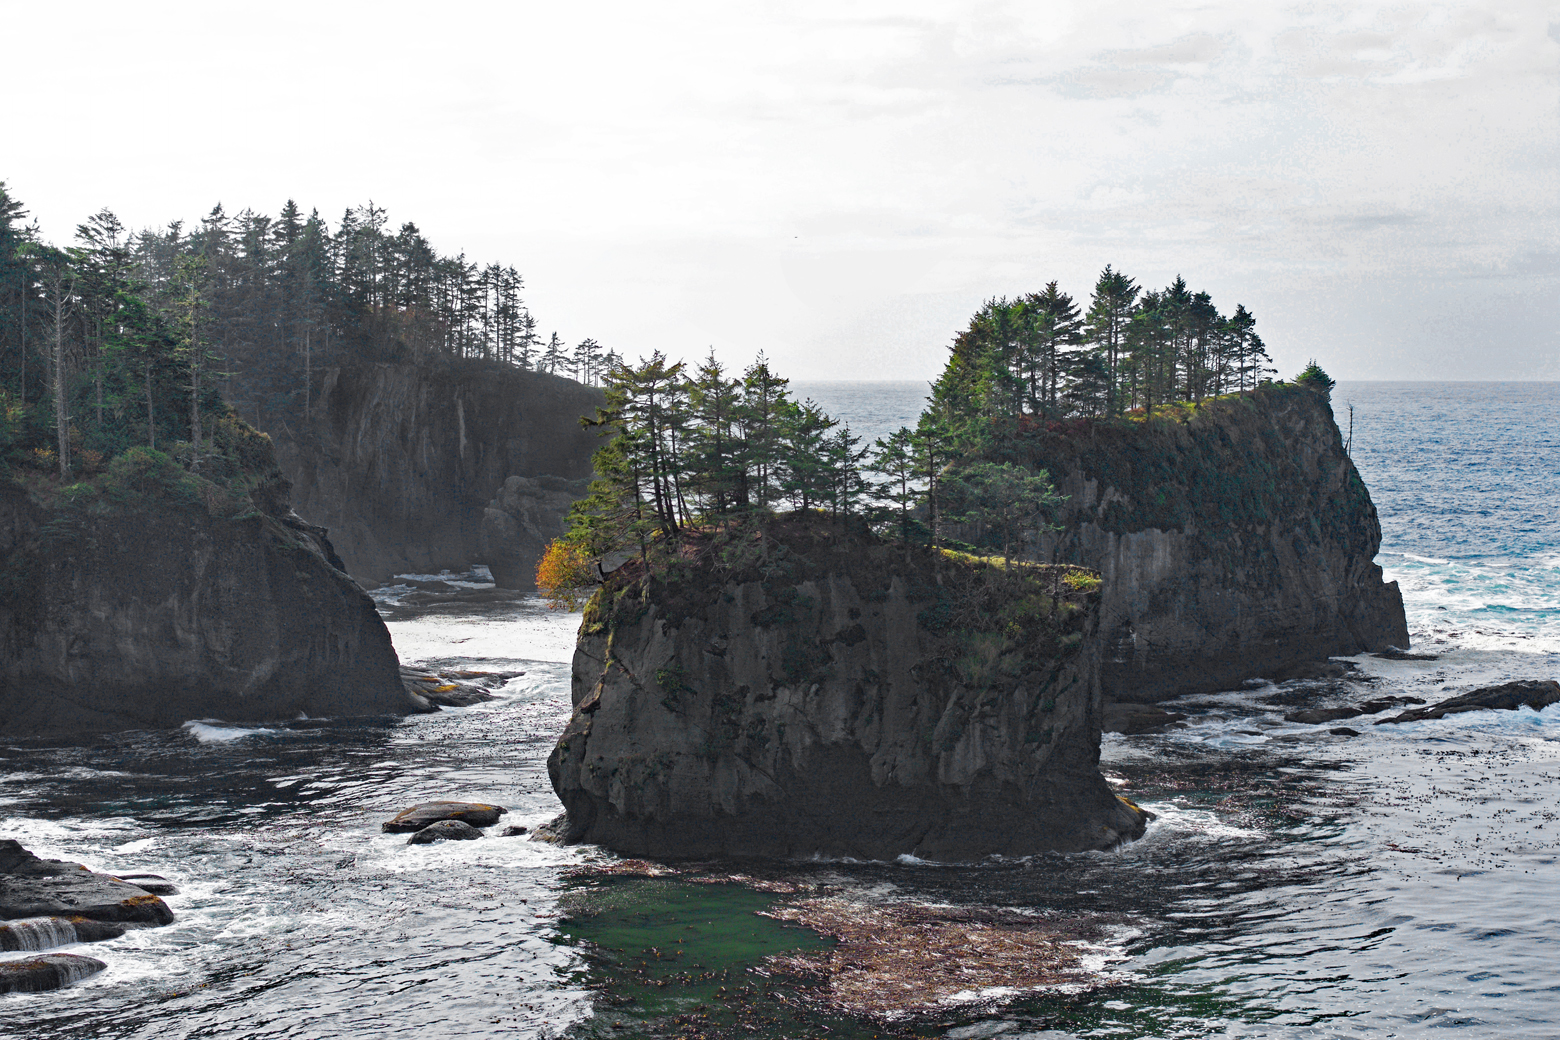 Sea stacks with trees growing on top viewed from Cape Flattery